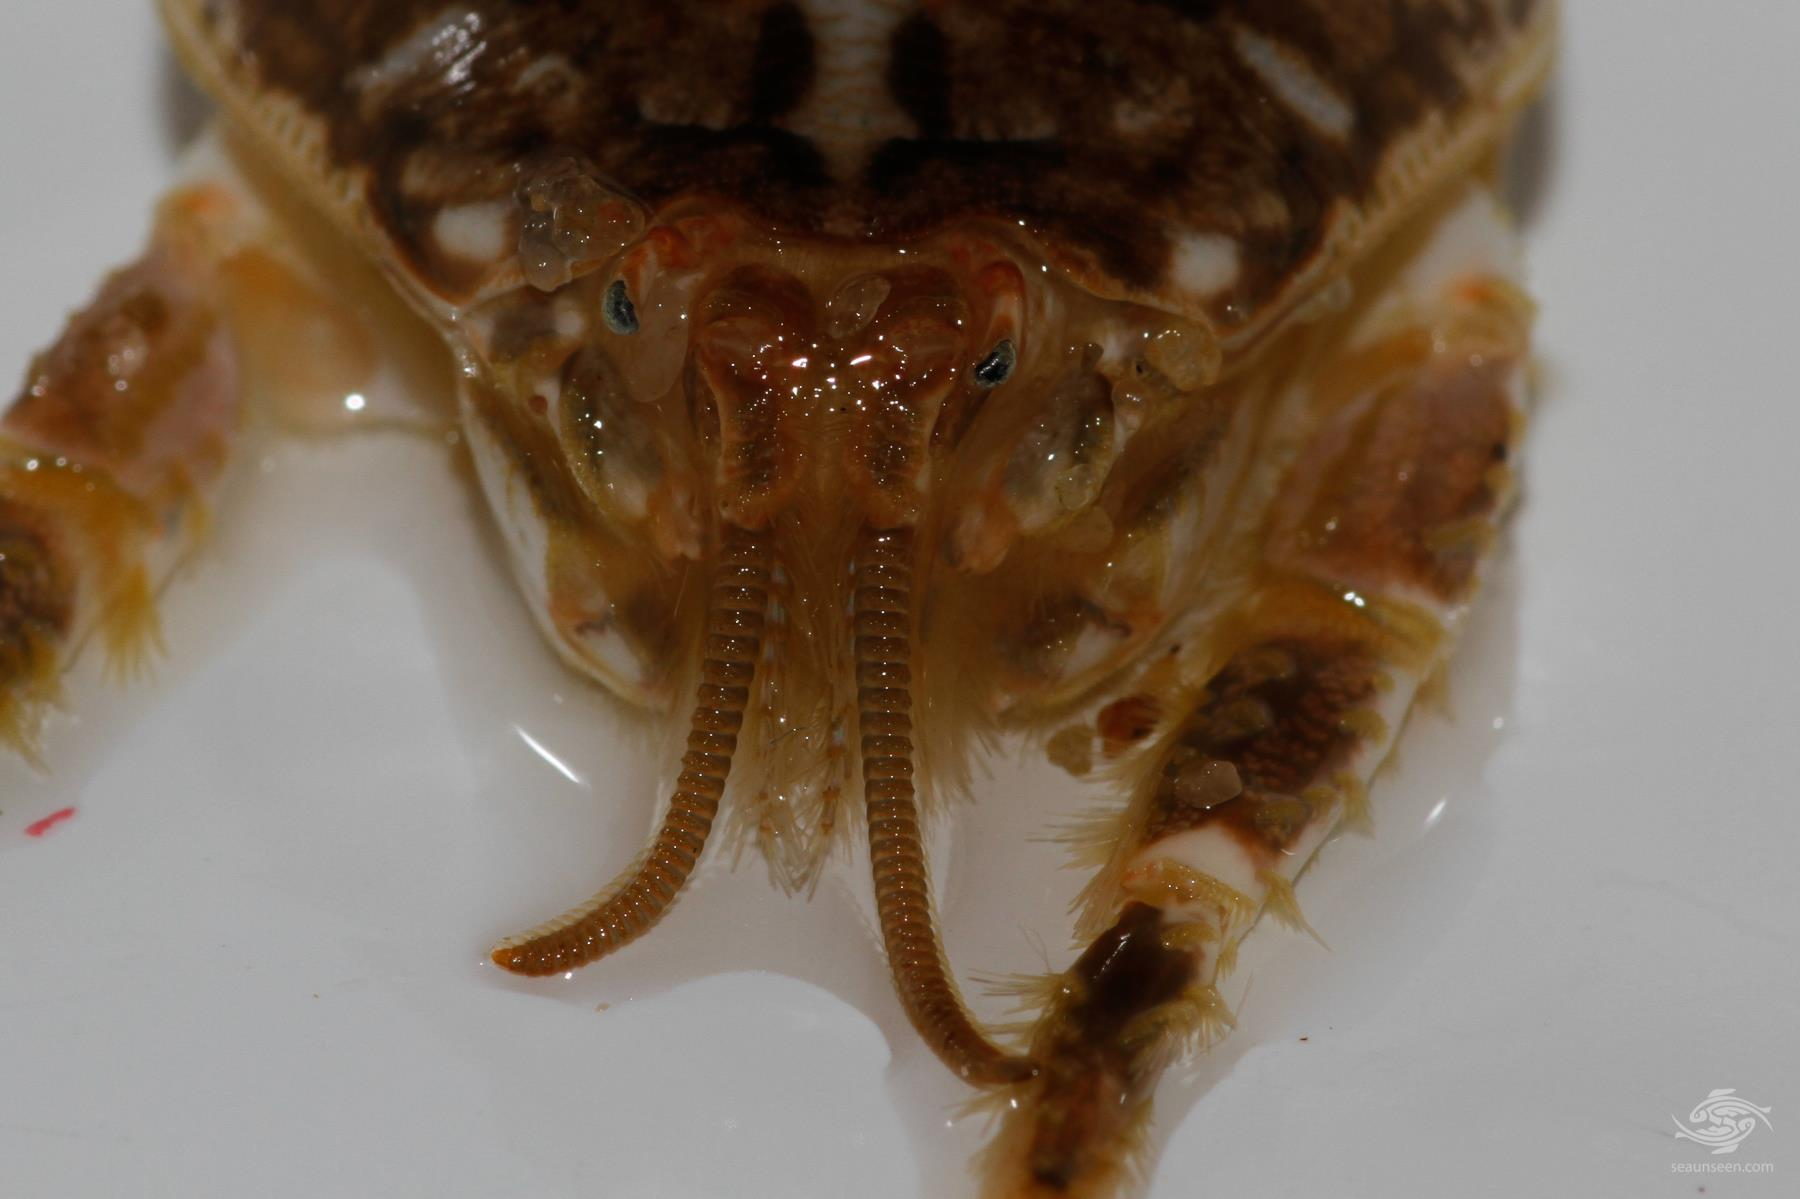 Mole Crabs- Sea Lice-Genus Emerita